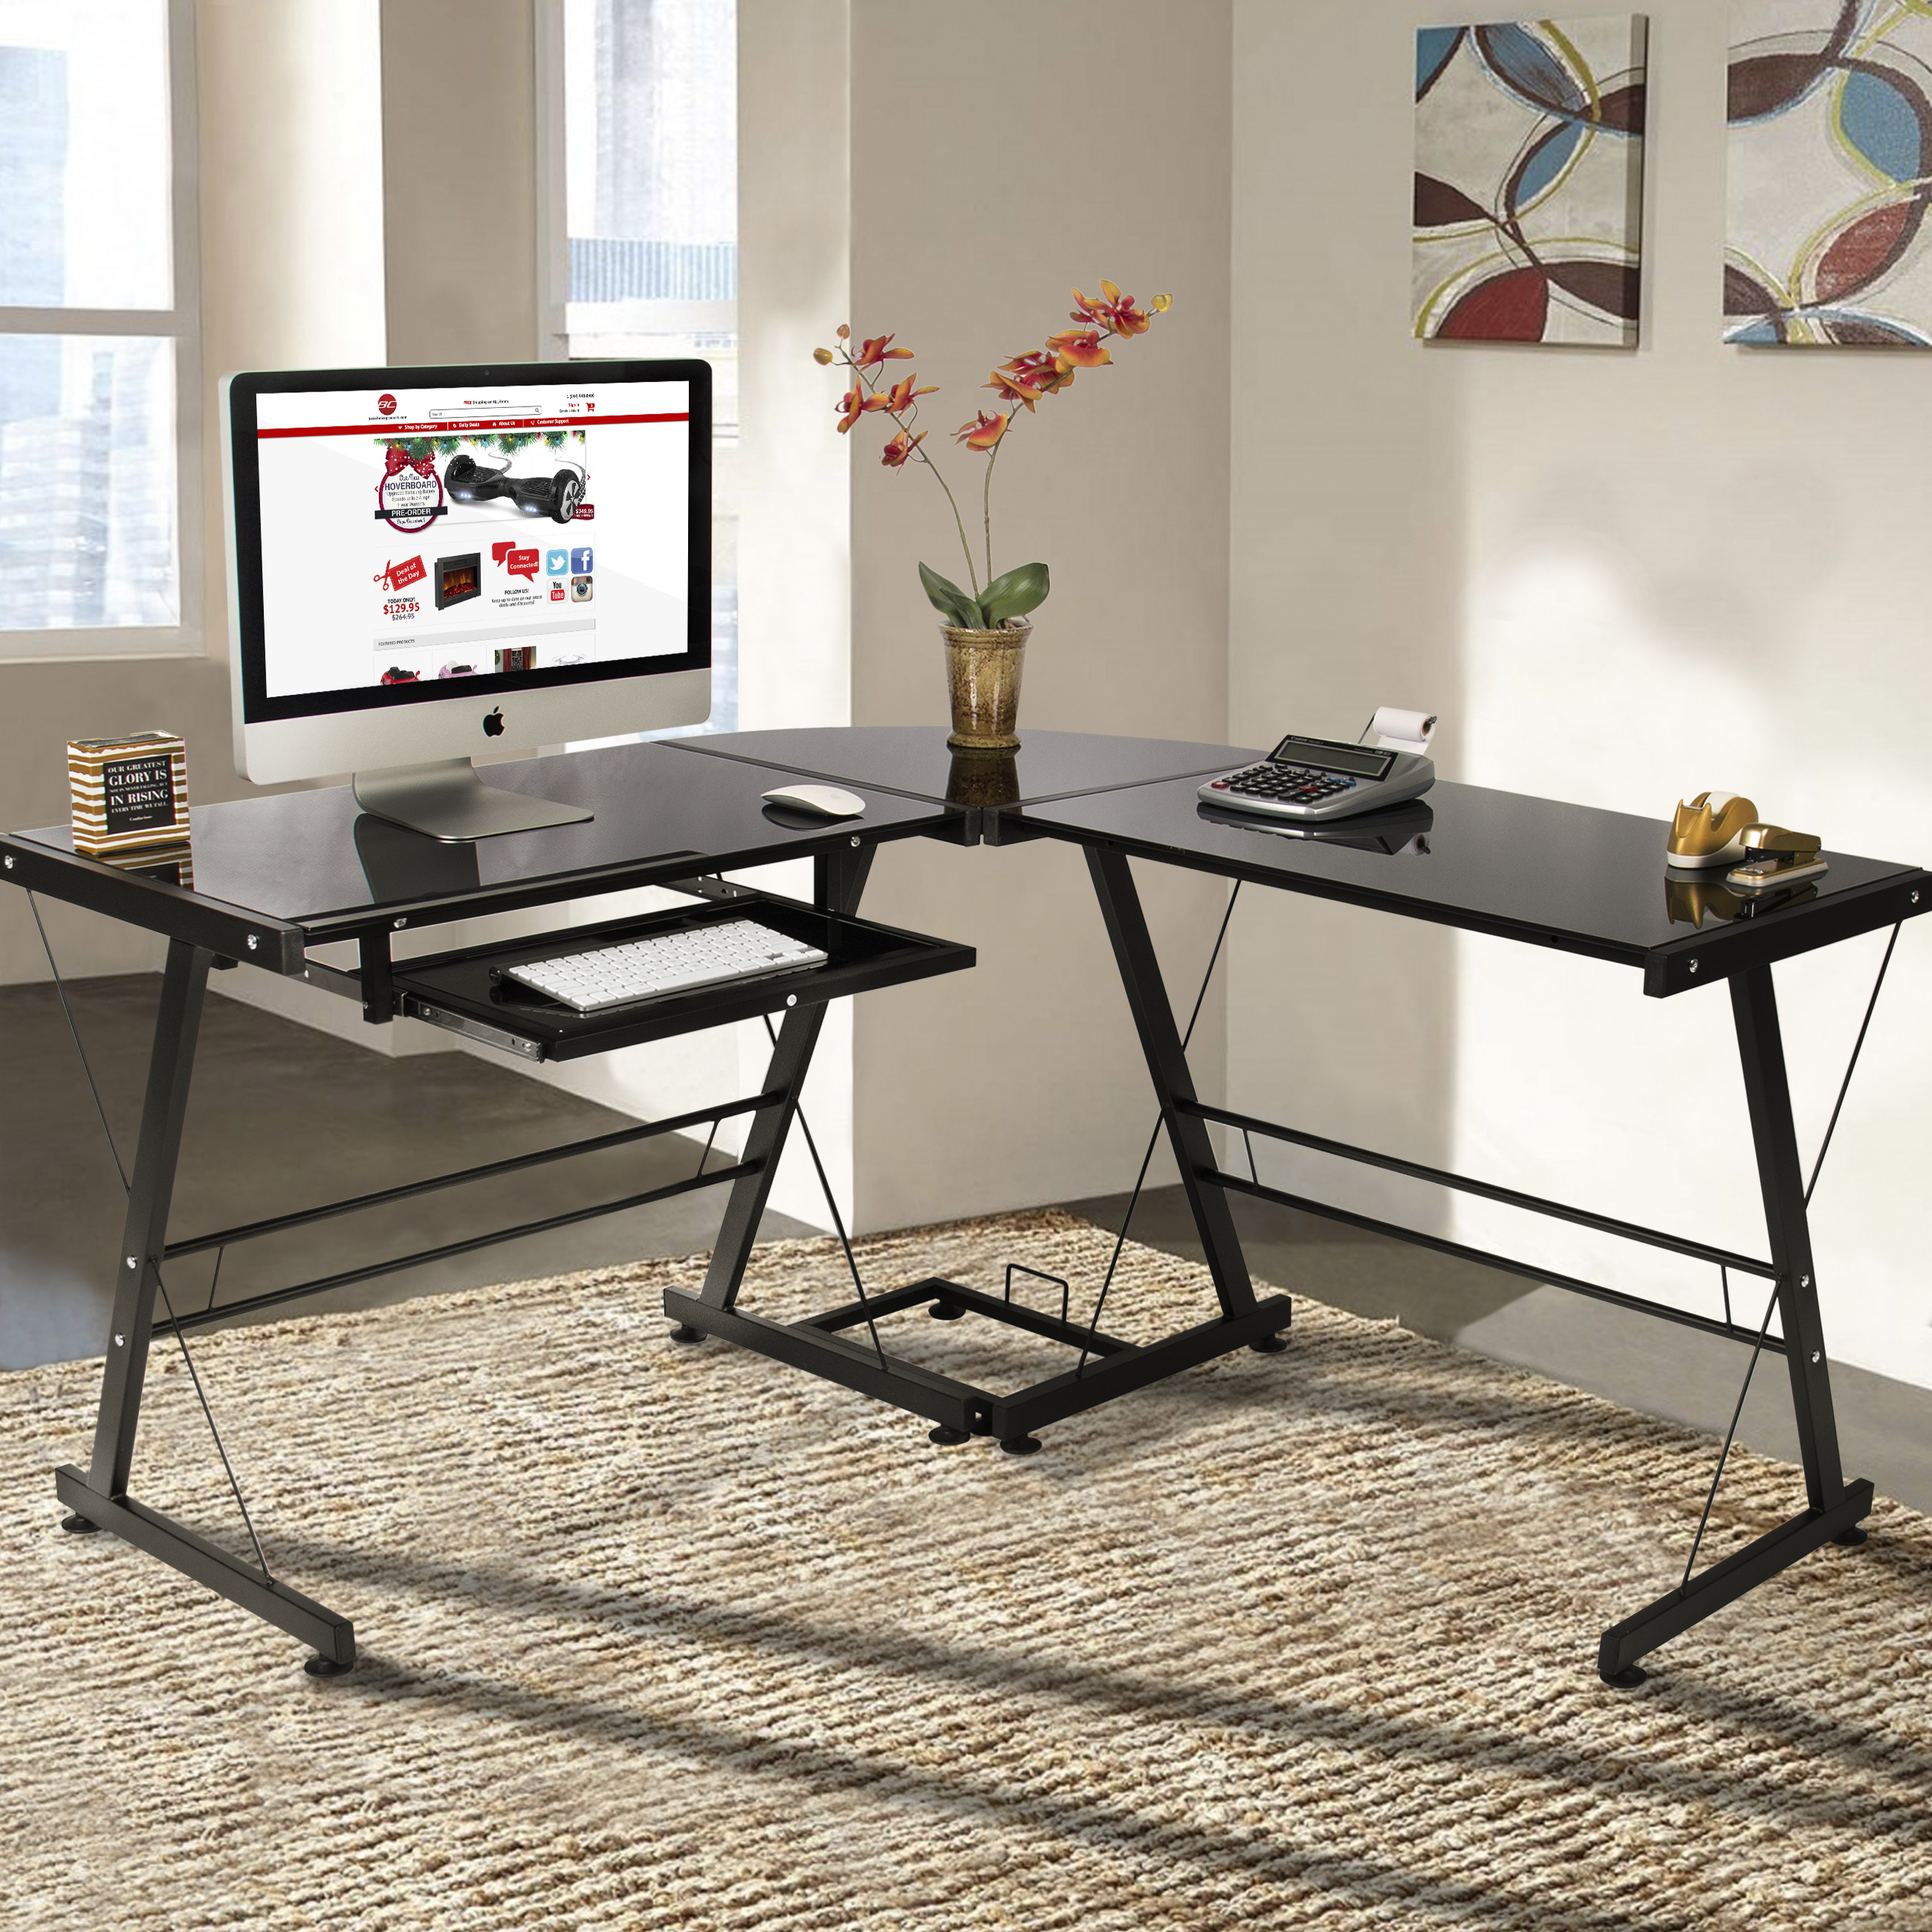 Compare S On Desktop Computer Table Online Ping Low